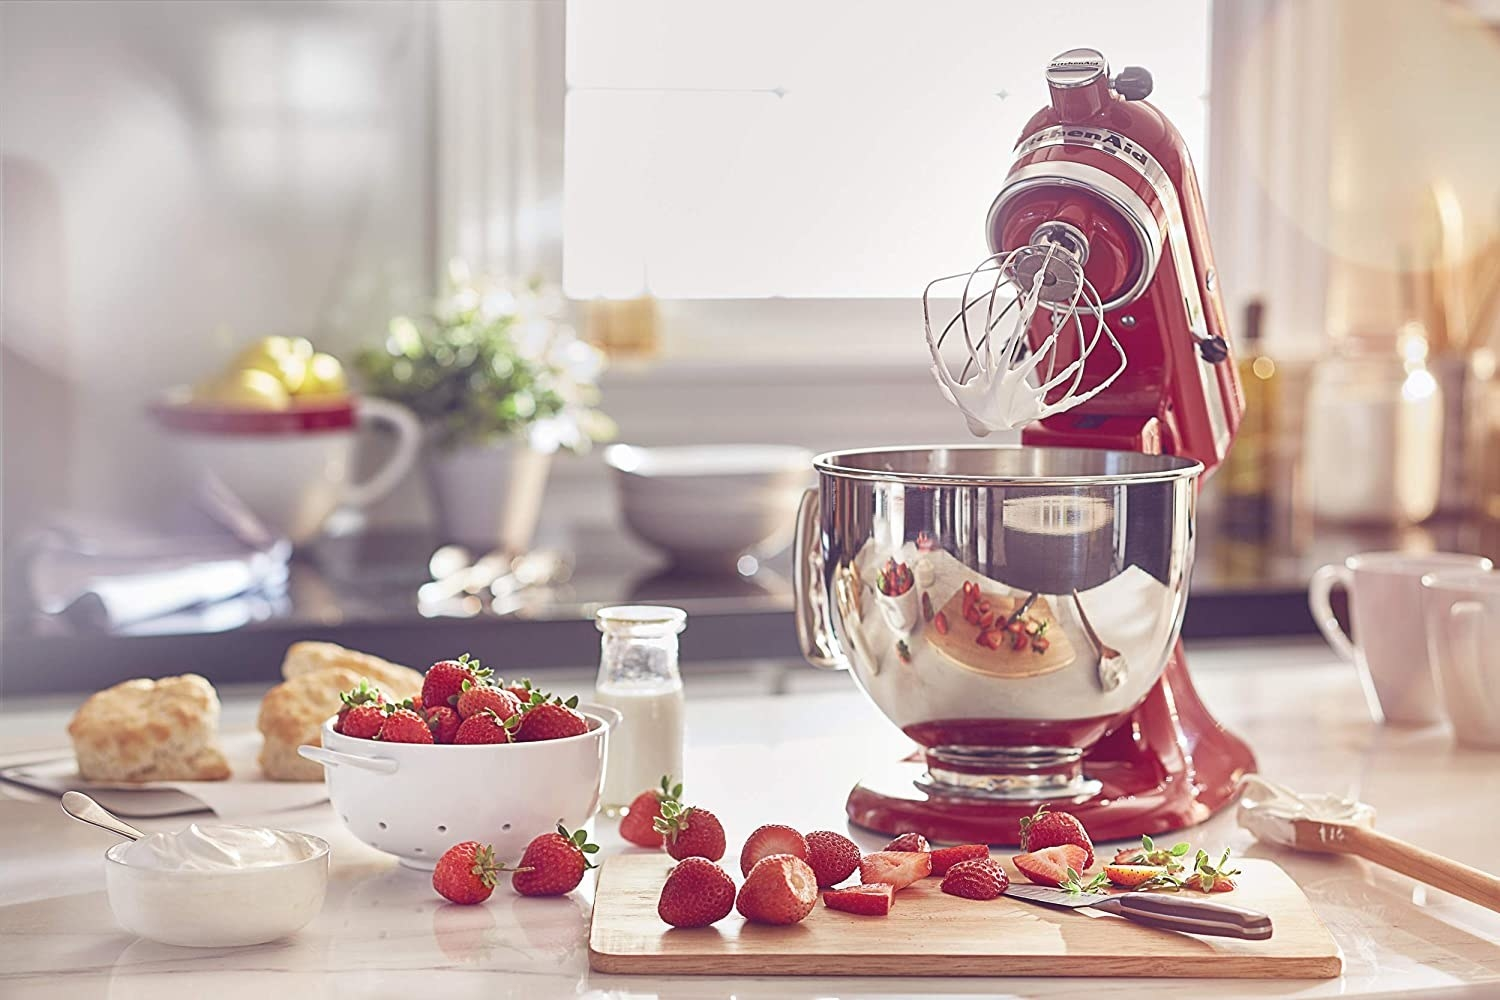 the mixer with some cream on the whisk and surrounded by strawberries